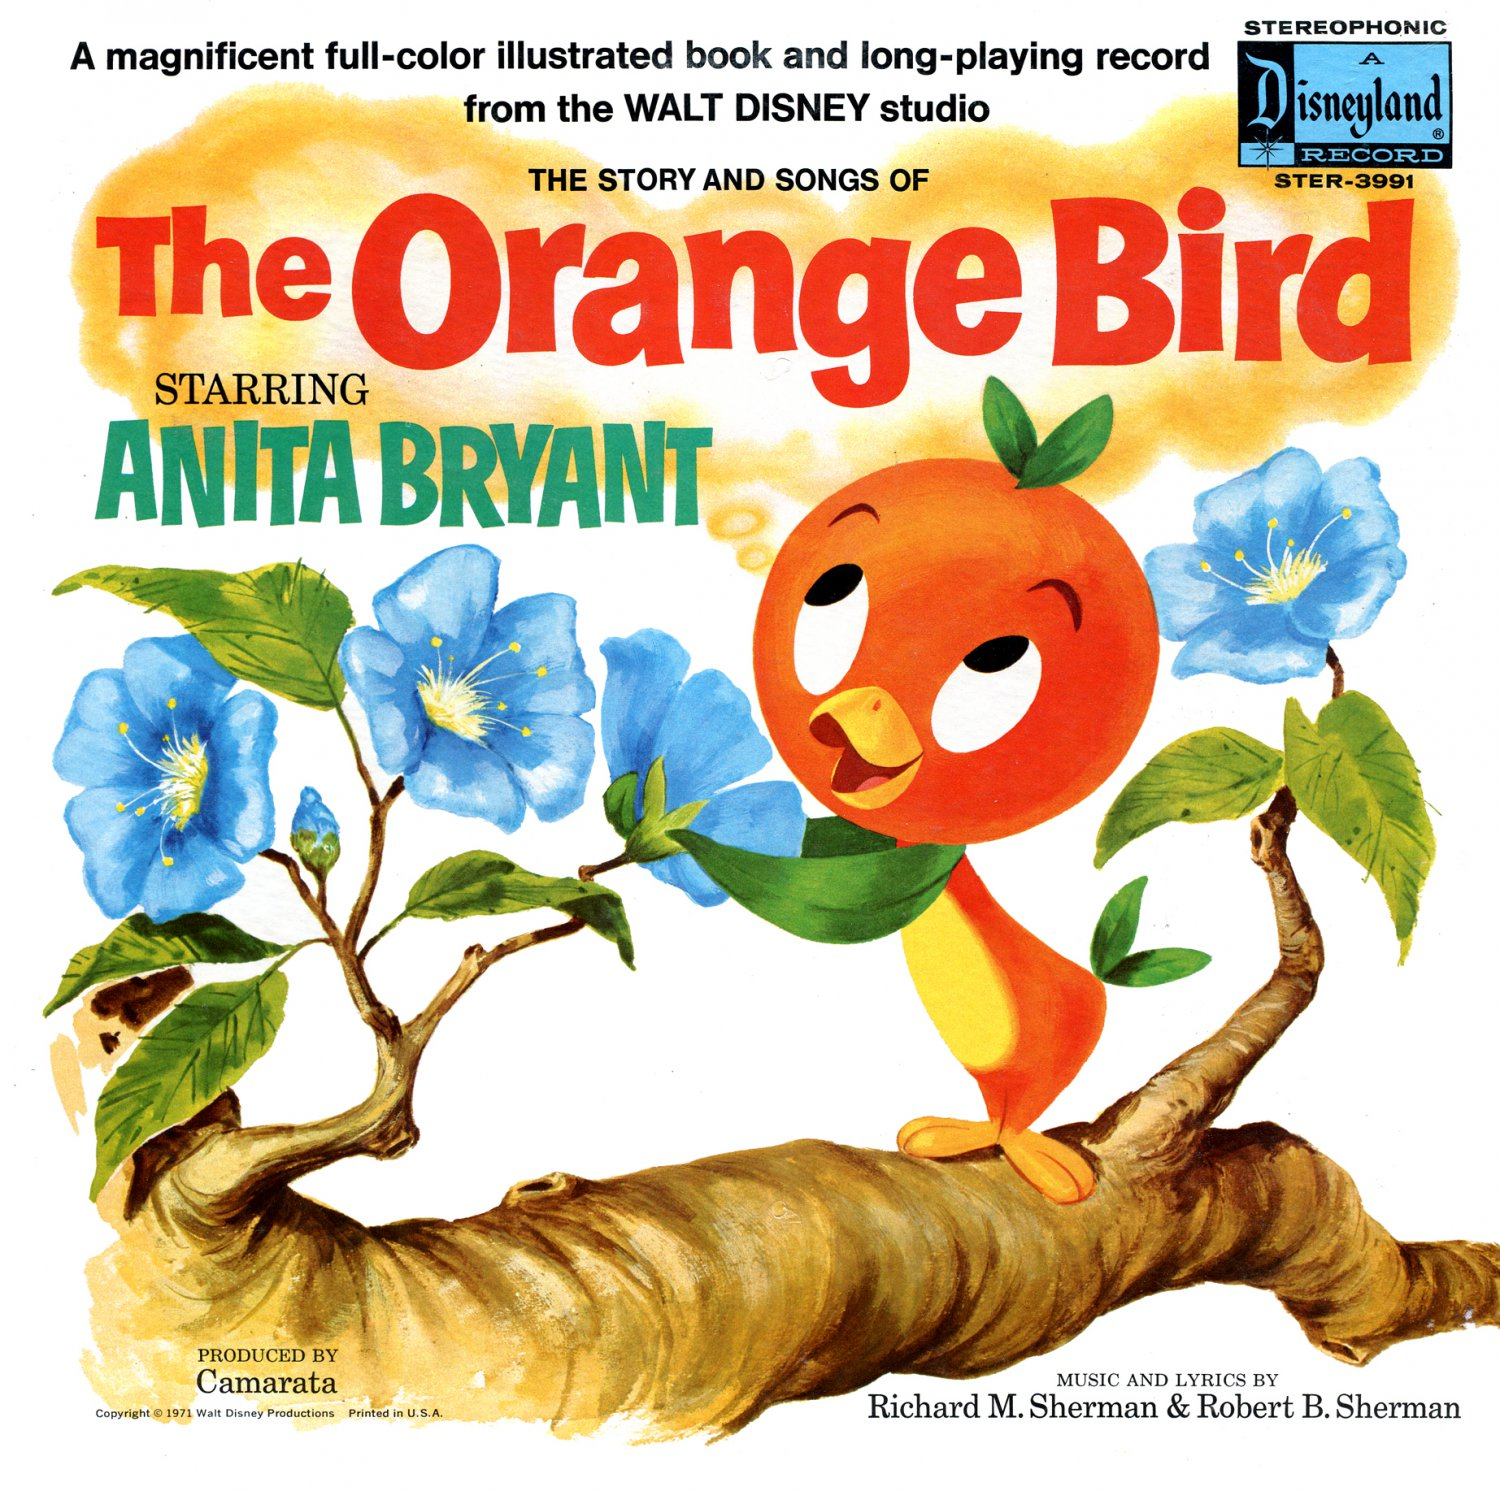 The Story & Songs of The Orange Bird - Walt Disney Original Soundtrack, Anita Bryant OST LP/CD